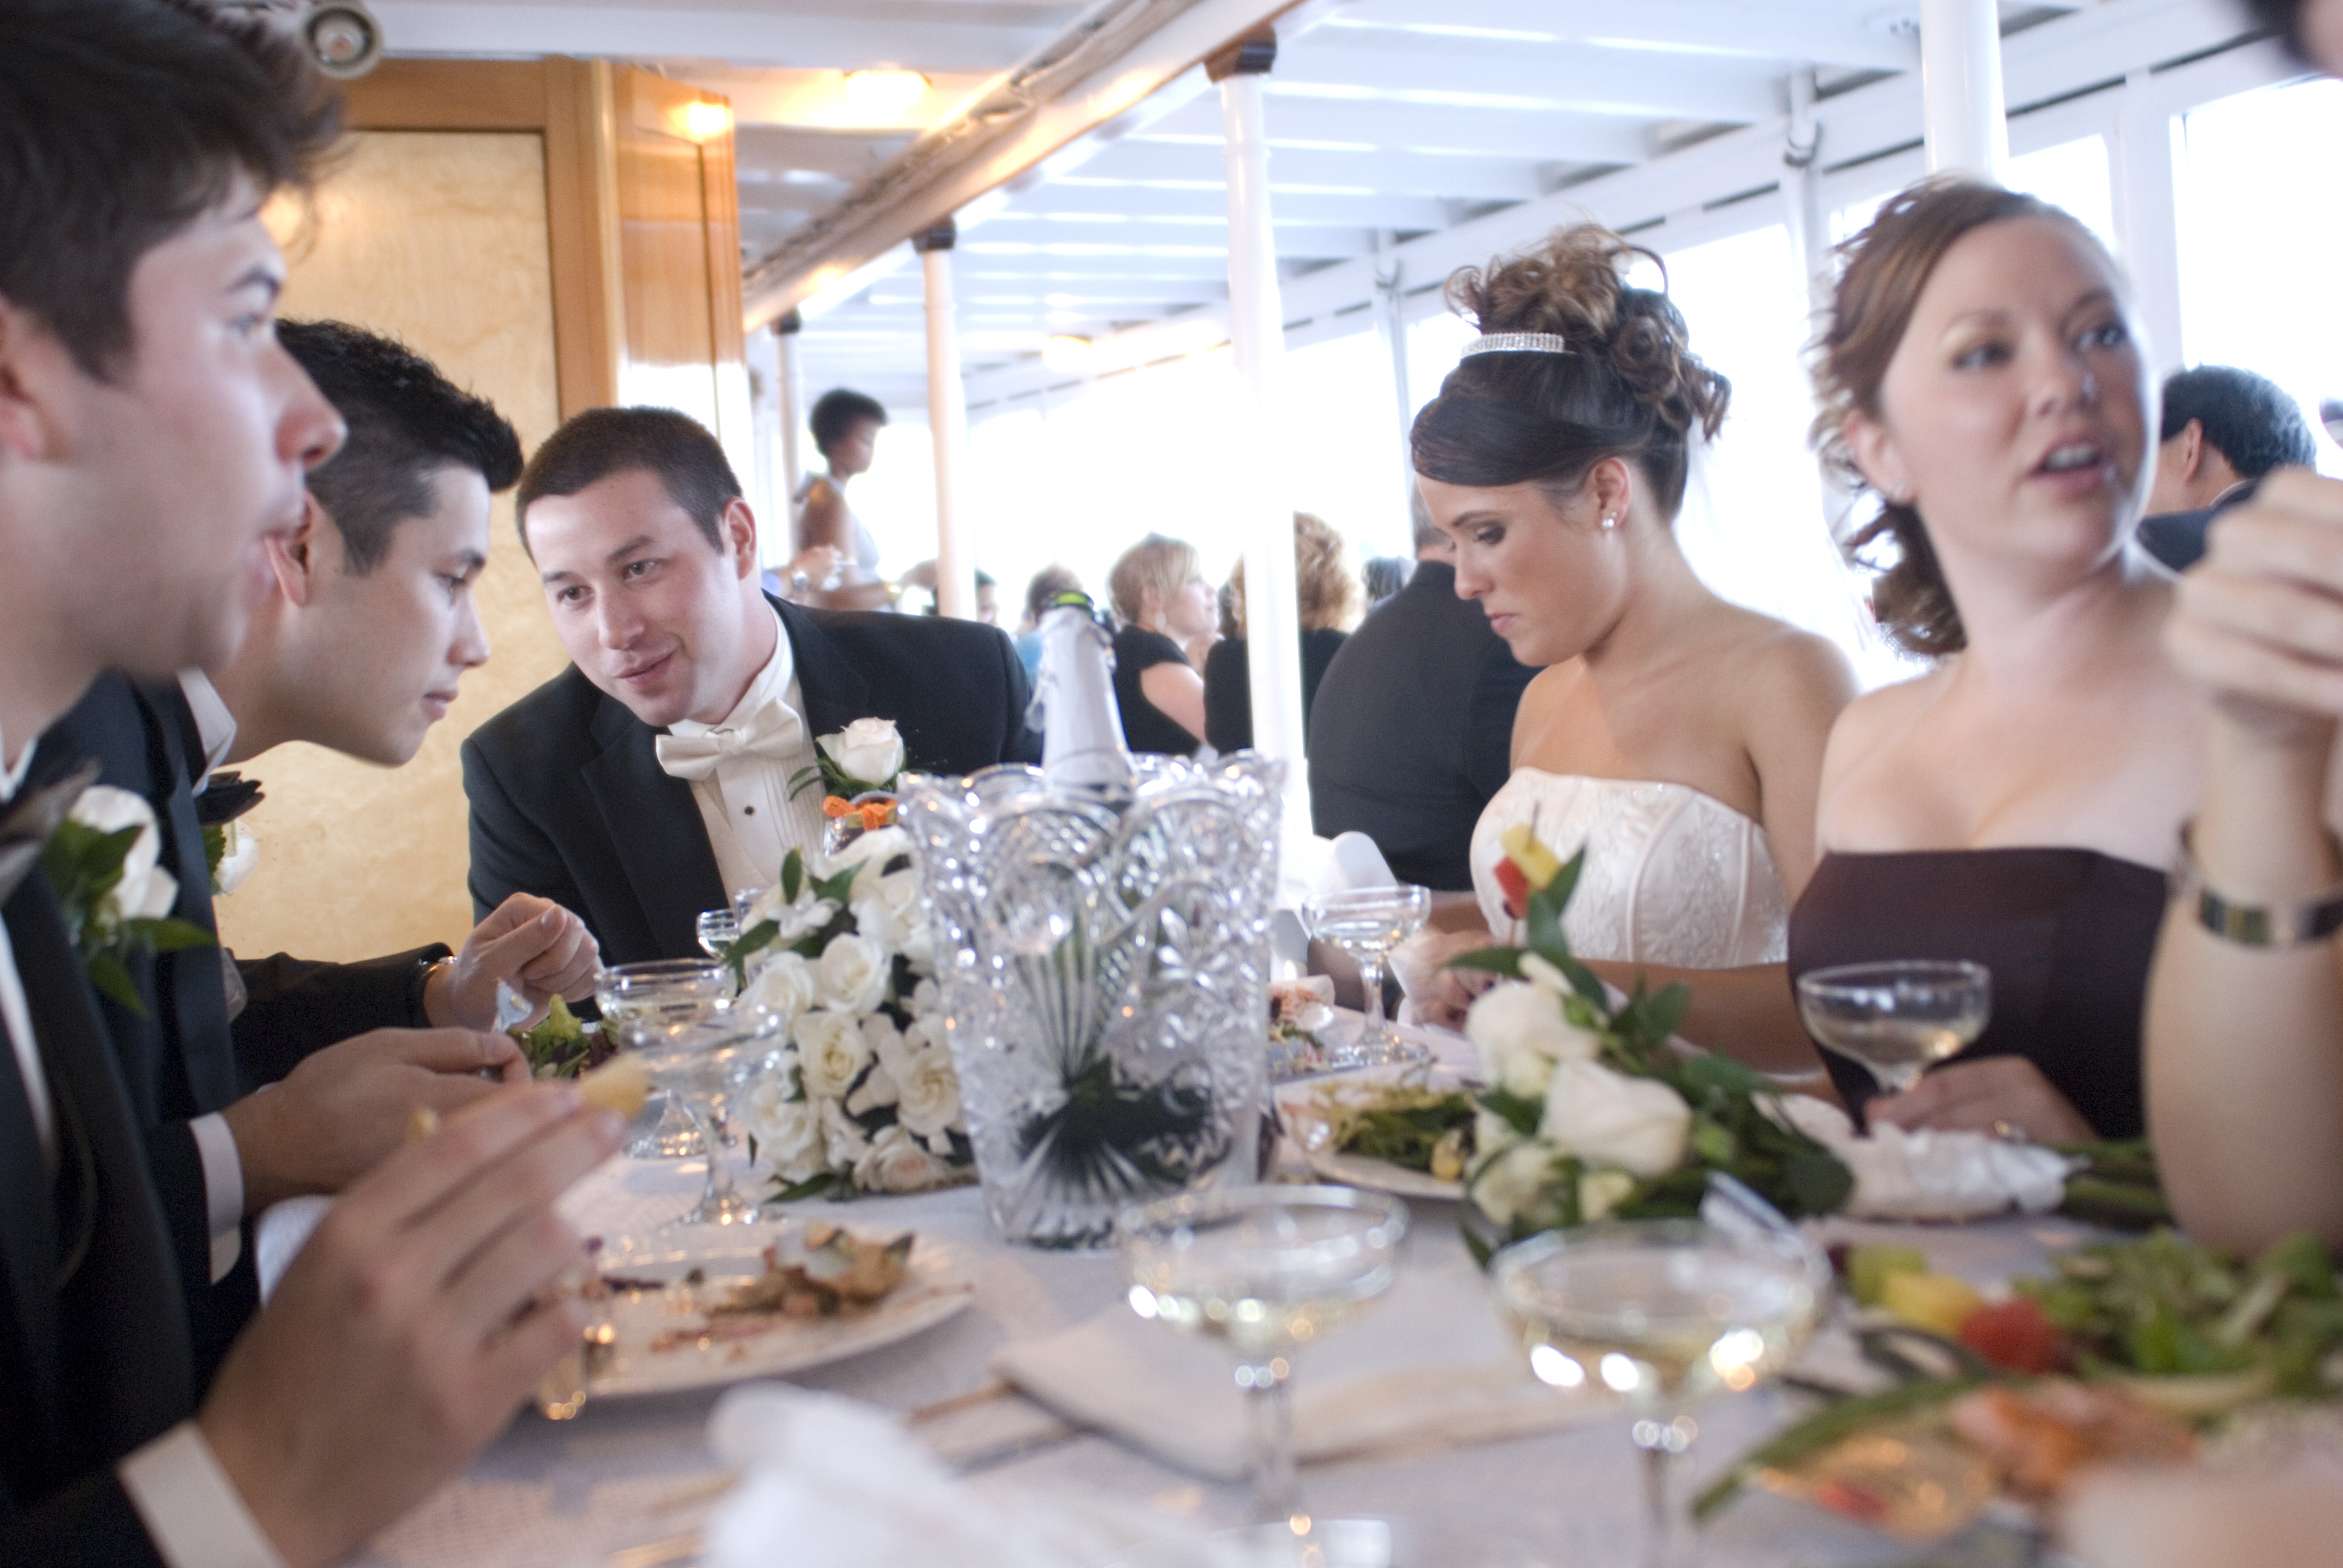 Reception, Flowers & Decor, Destinations, Cruise, Dinner, Head table, Boat, Ship, Virginia v steamship